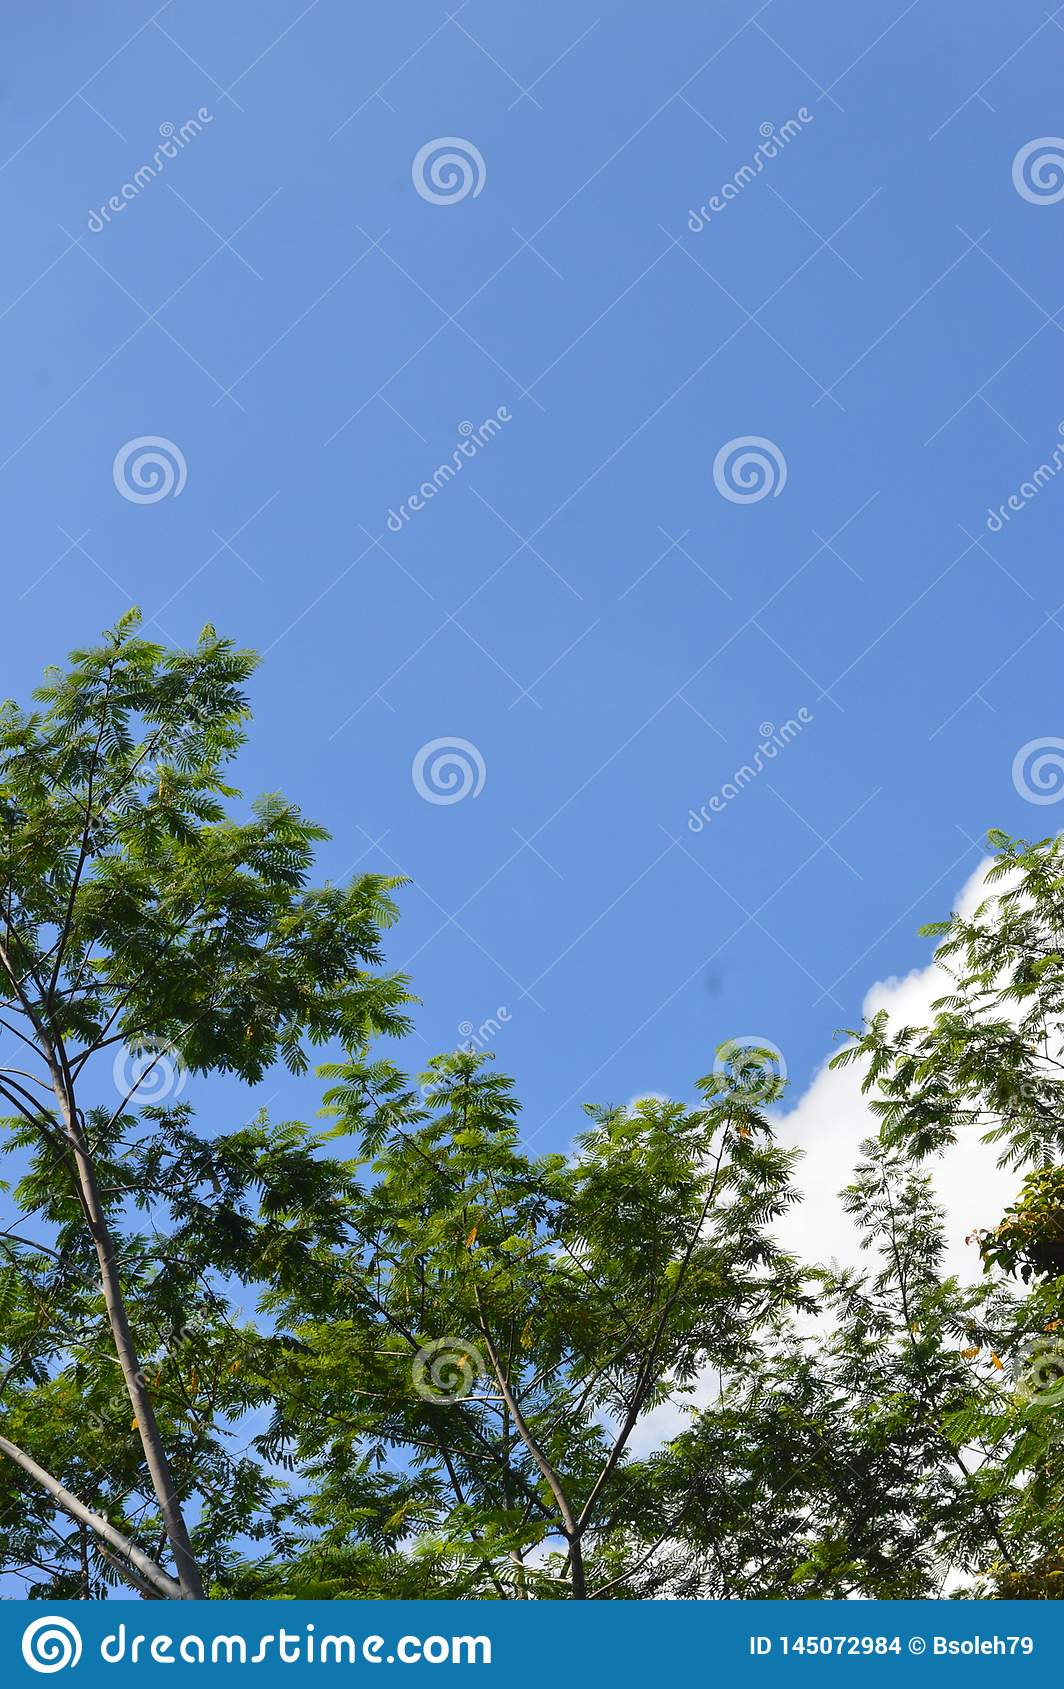 A picture of a tree that towered to the sky